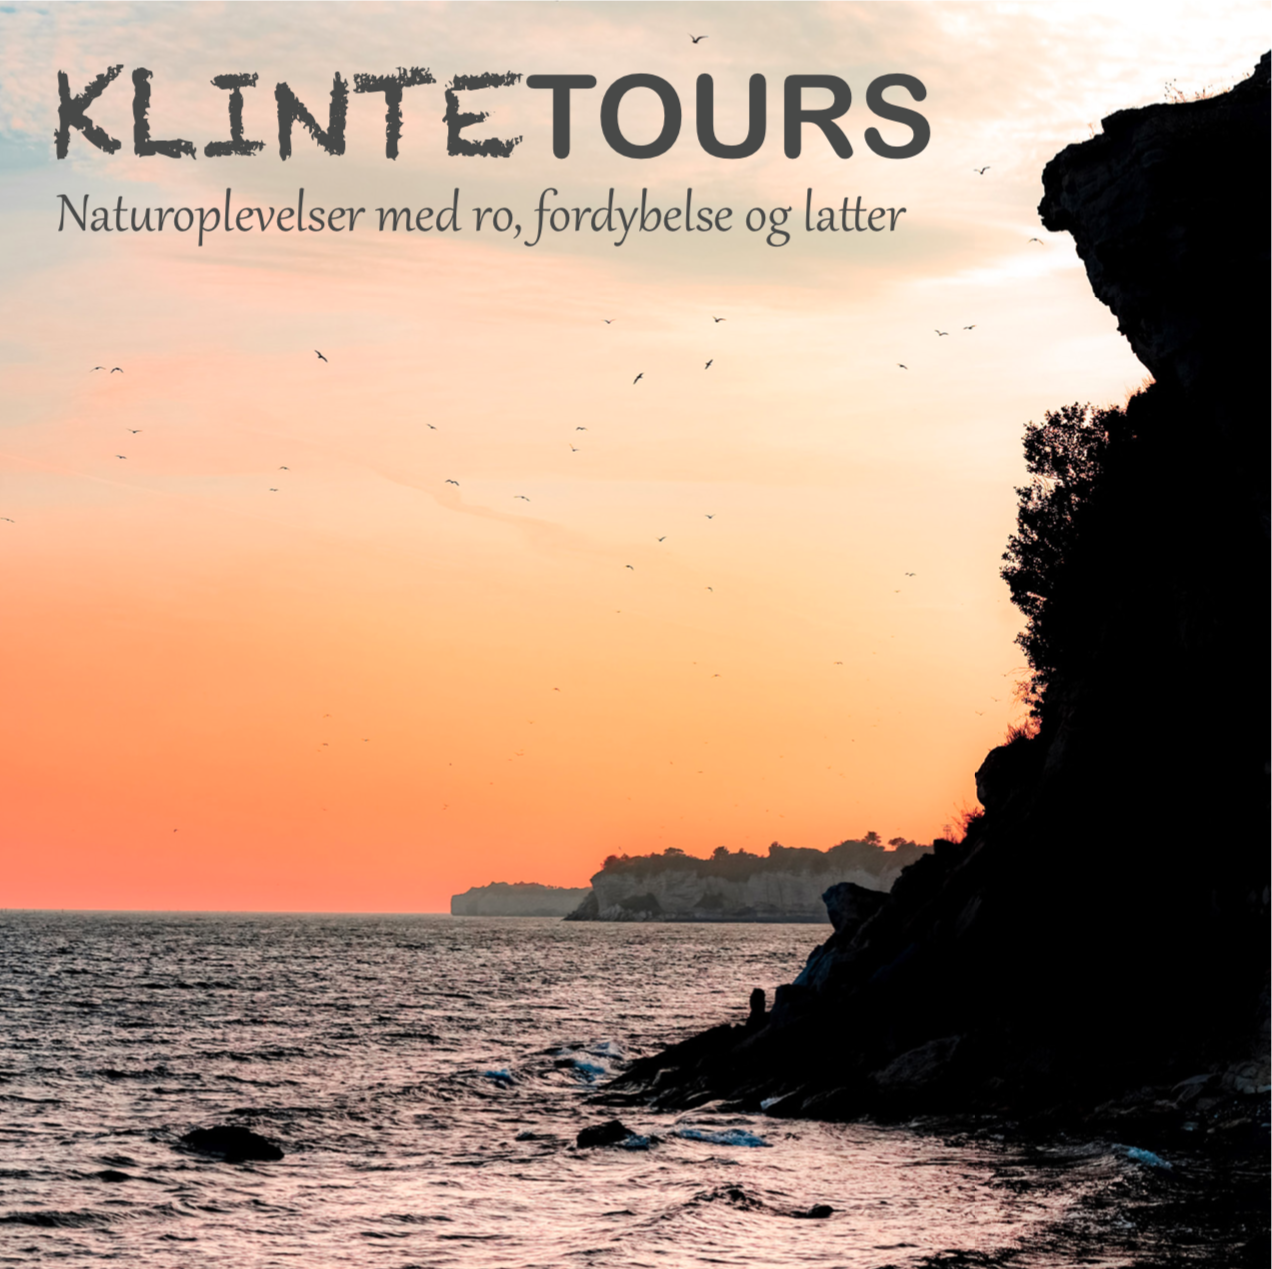 Brochure for Klintetours